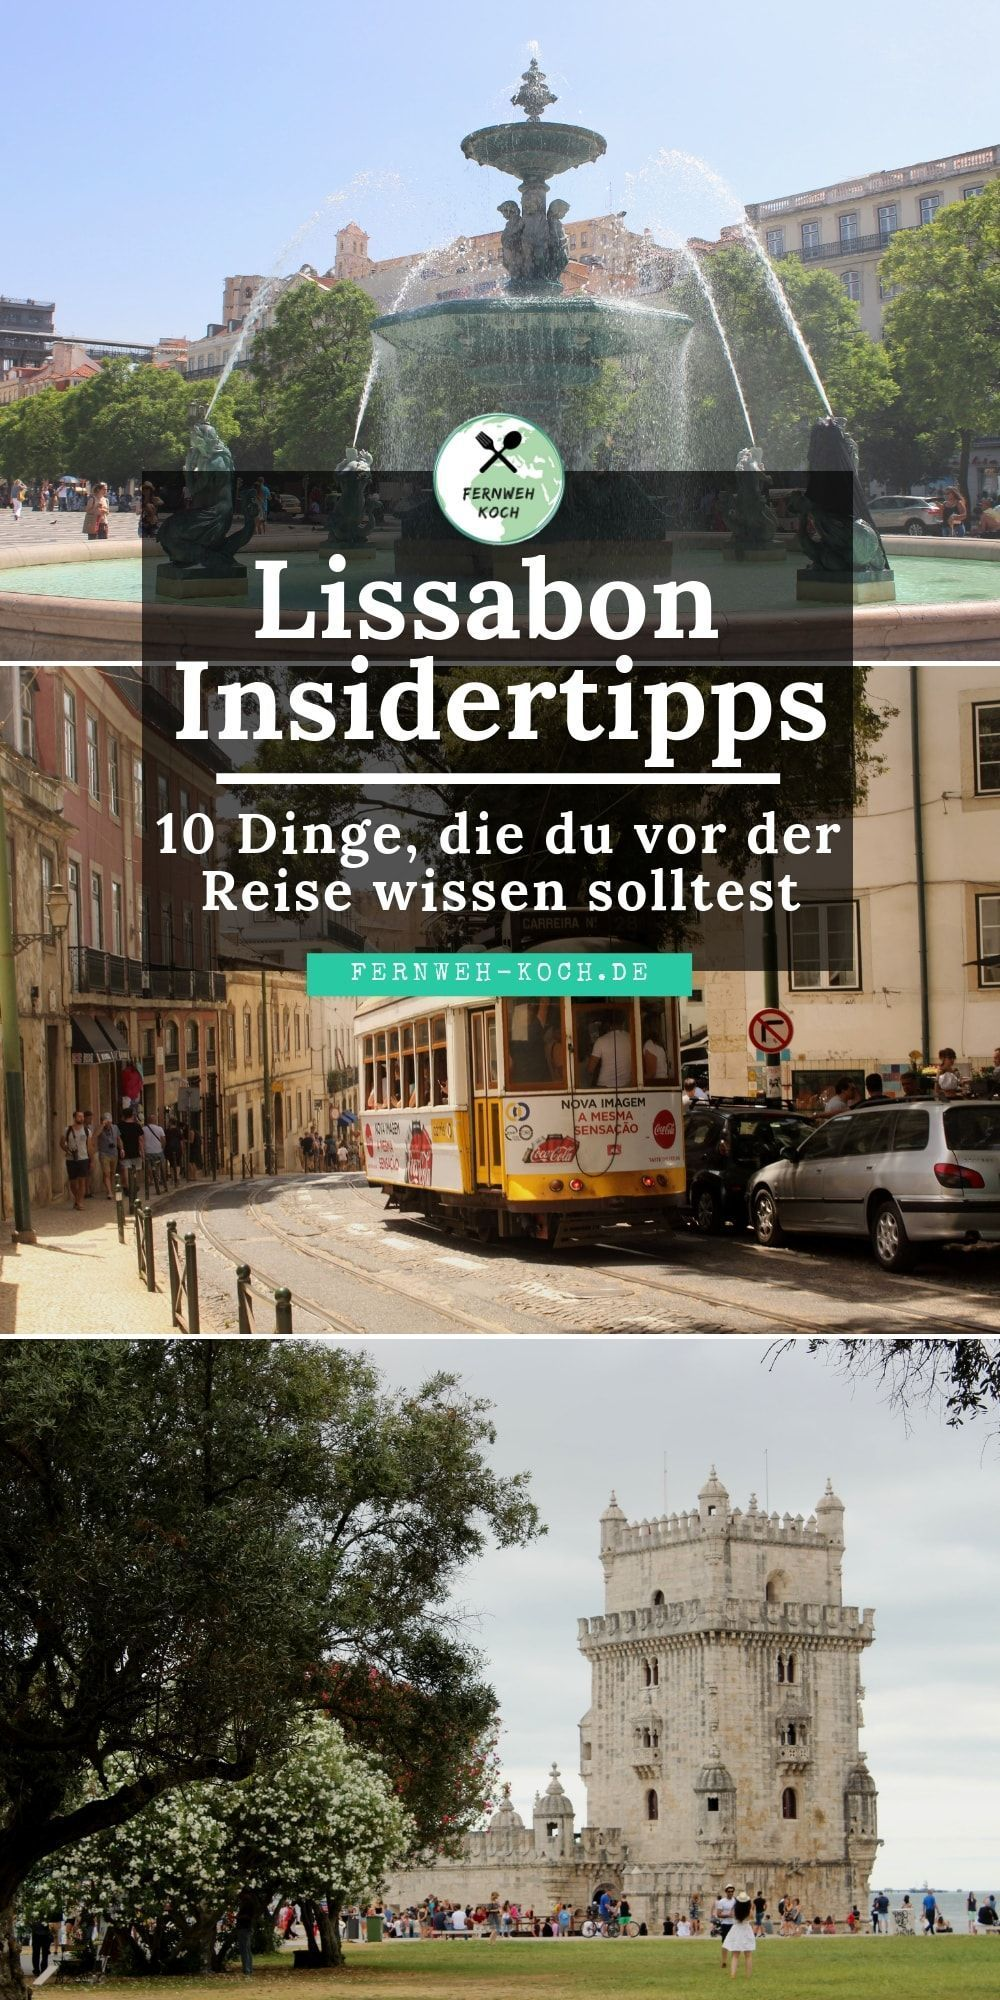 City break Lisbon: tips and tricks for your trip -  Lisbon in Portugal is a popular destination for a short vacation in Europe. I reveal 10 insider tip - #BeachTravel #Beaches #break #City #ComicBooks #ComicsAndCartoons #Lisbon #Tips #Tricks #Trip #VintagePosters #VintageTravel